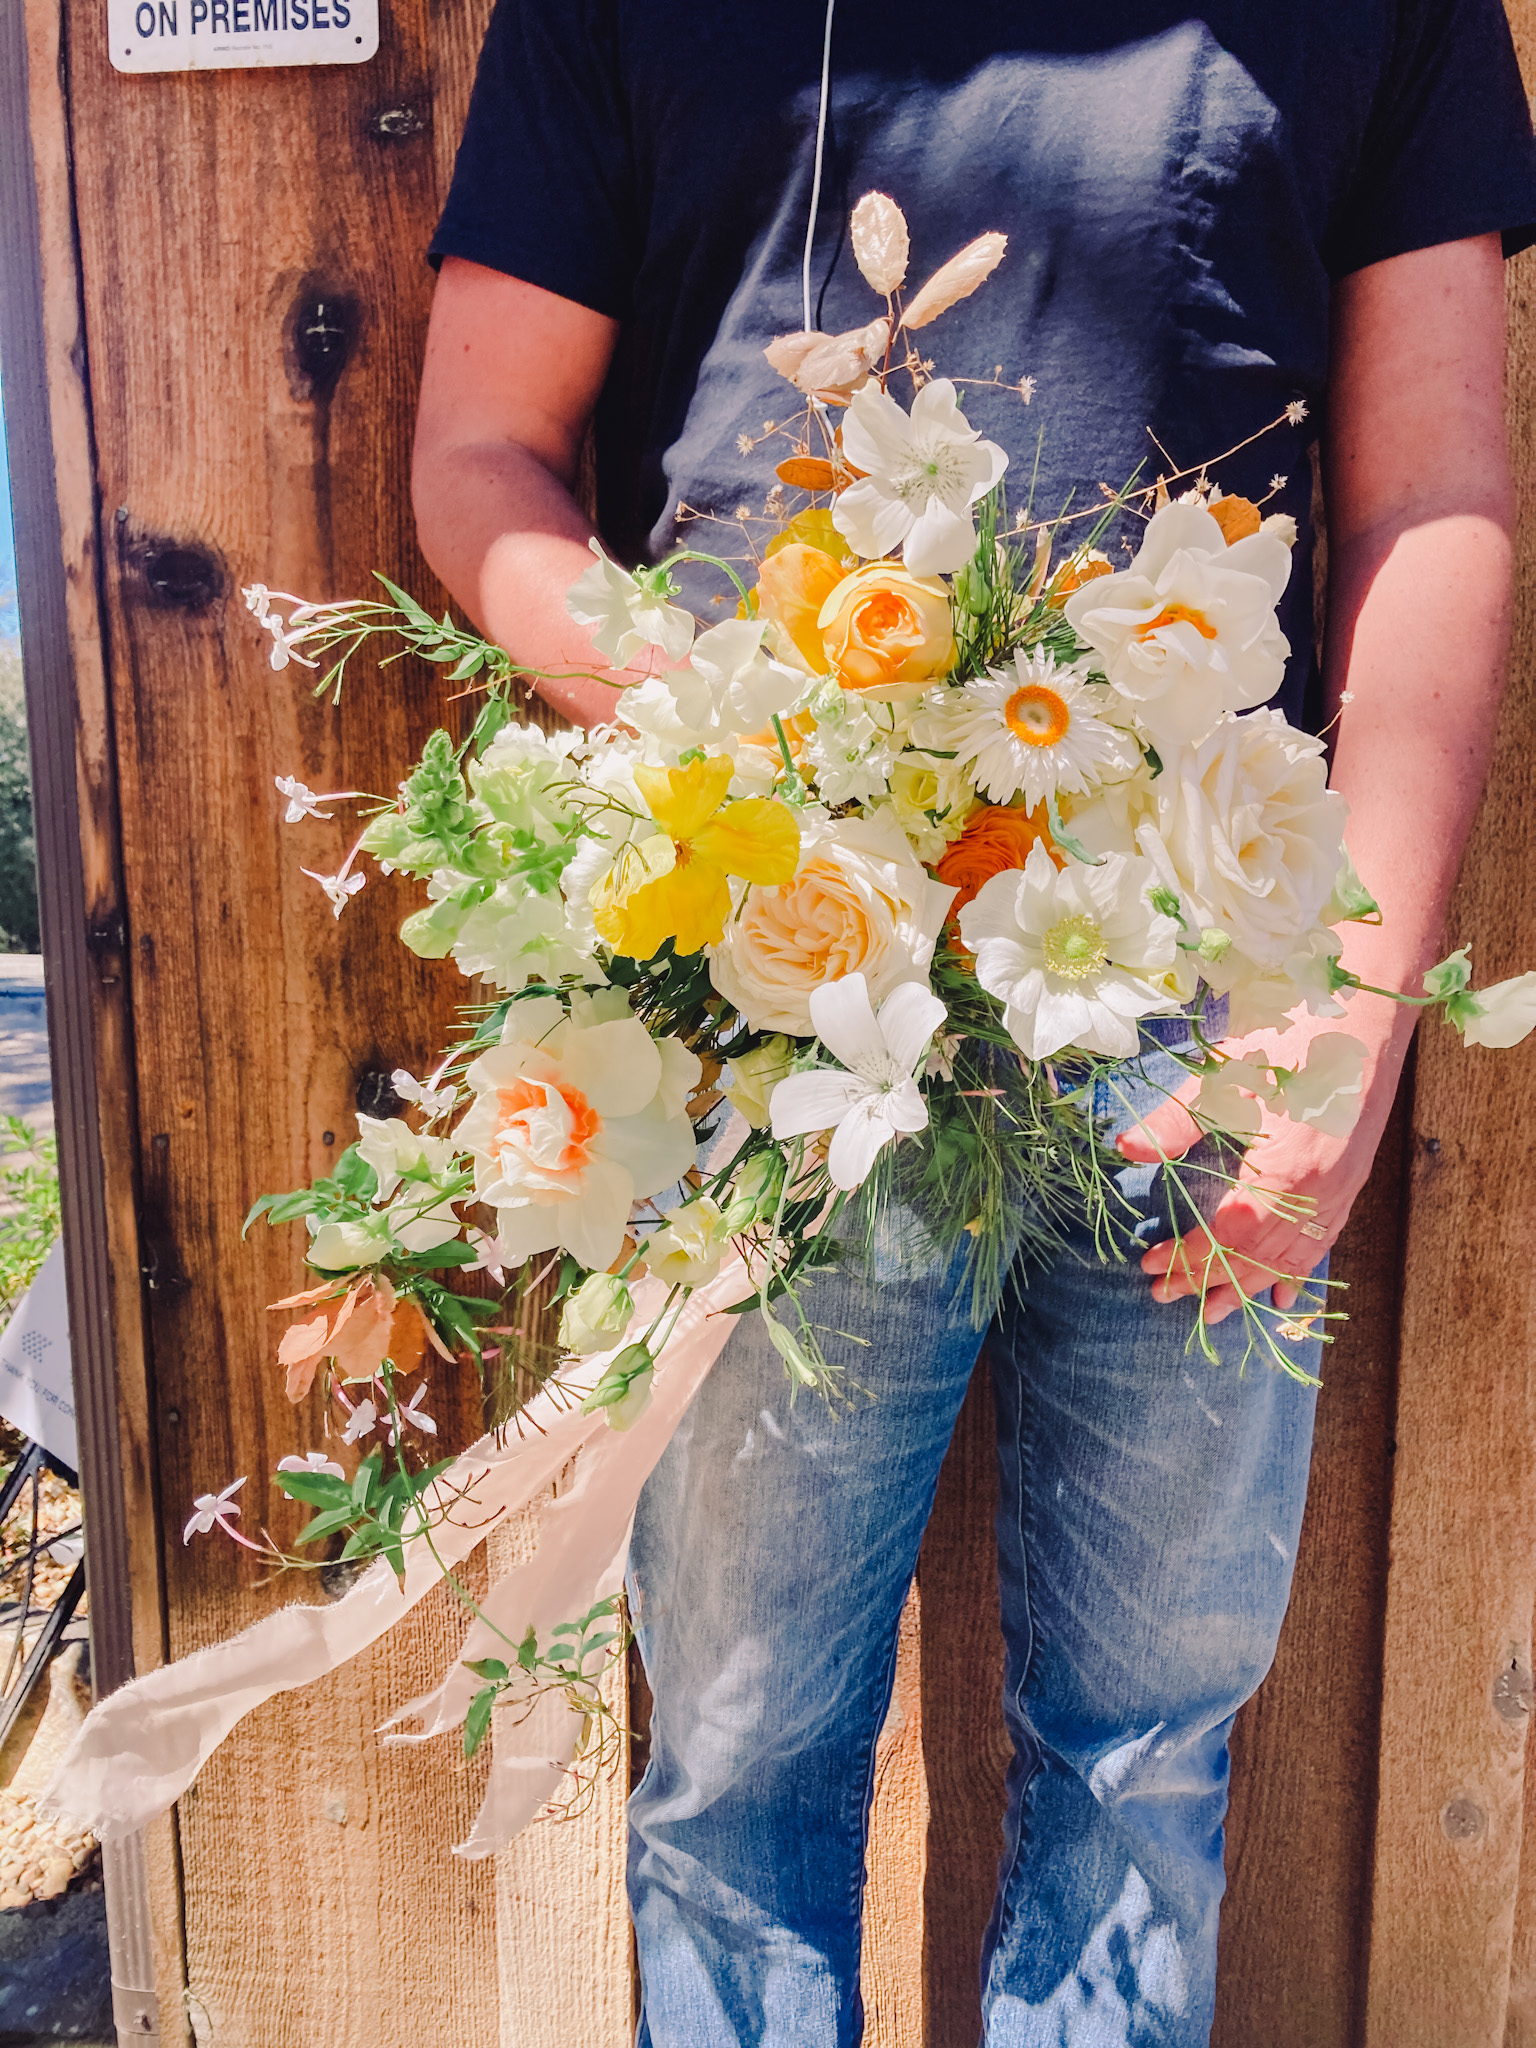 Nurture Floral Co.'s sustainable wedding flowers are designed by nature and arranged with intention. Gorgeous, nuanced color, full of soul in San Diego.